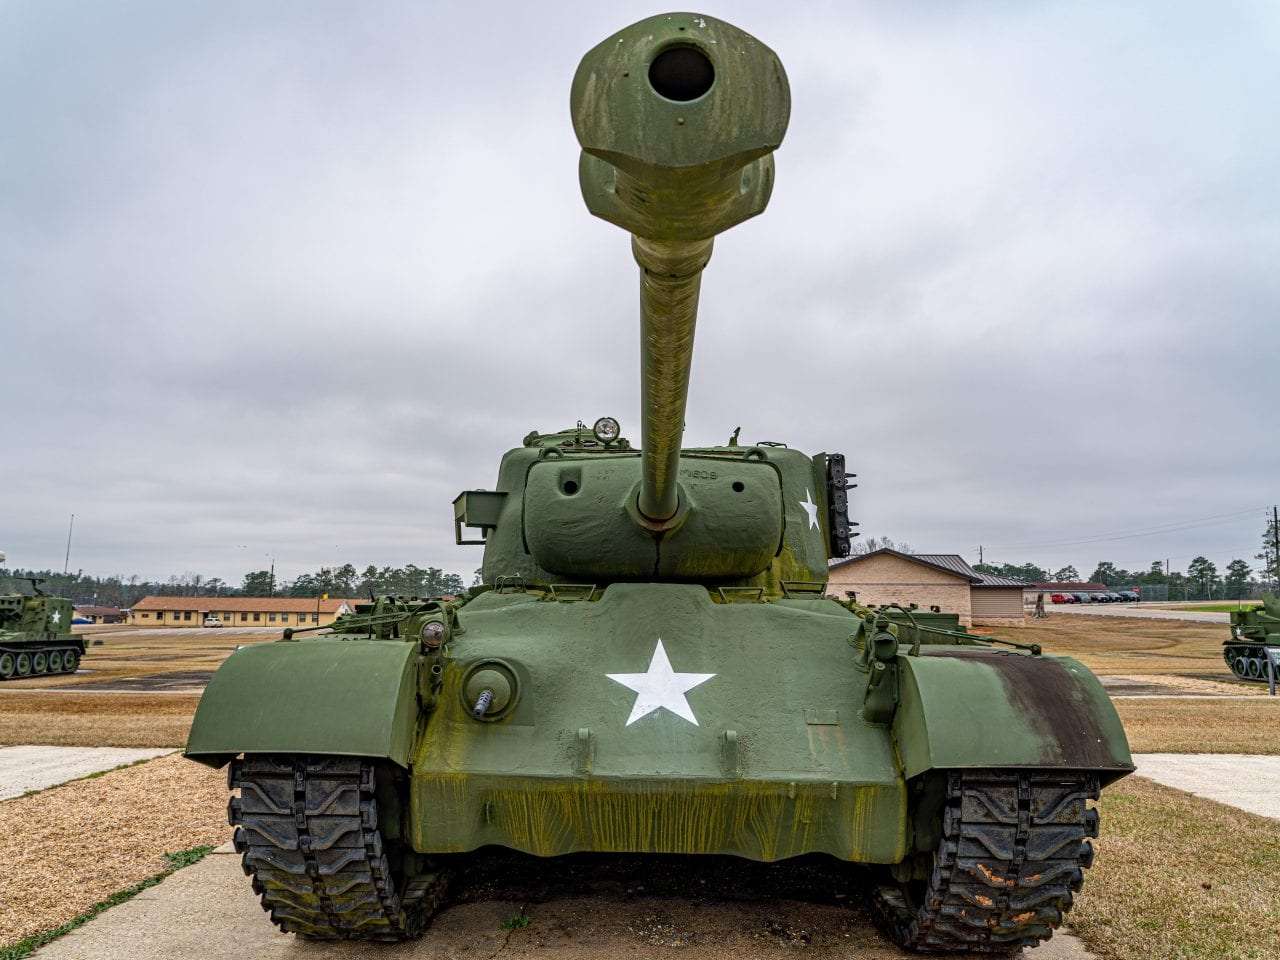 Come see a tank at the Mississippi Armed Forces Museum